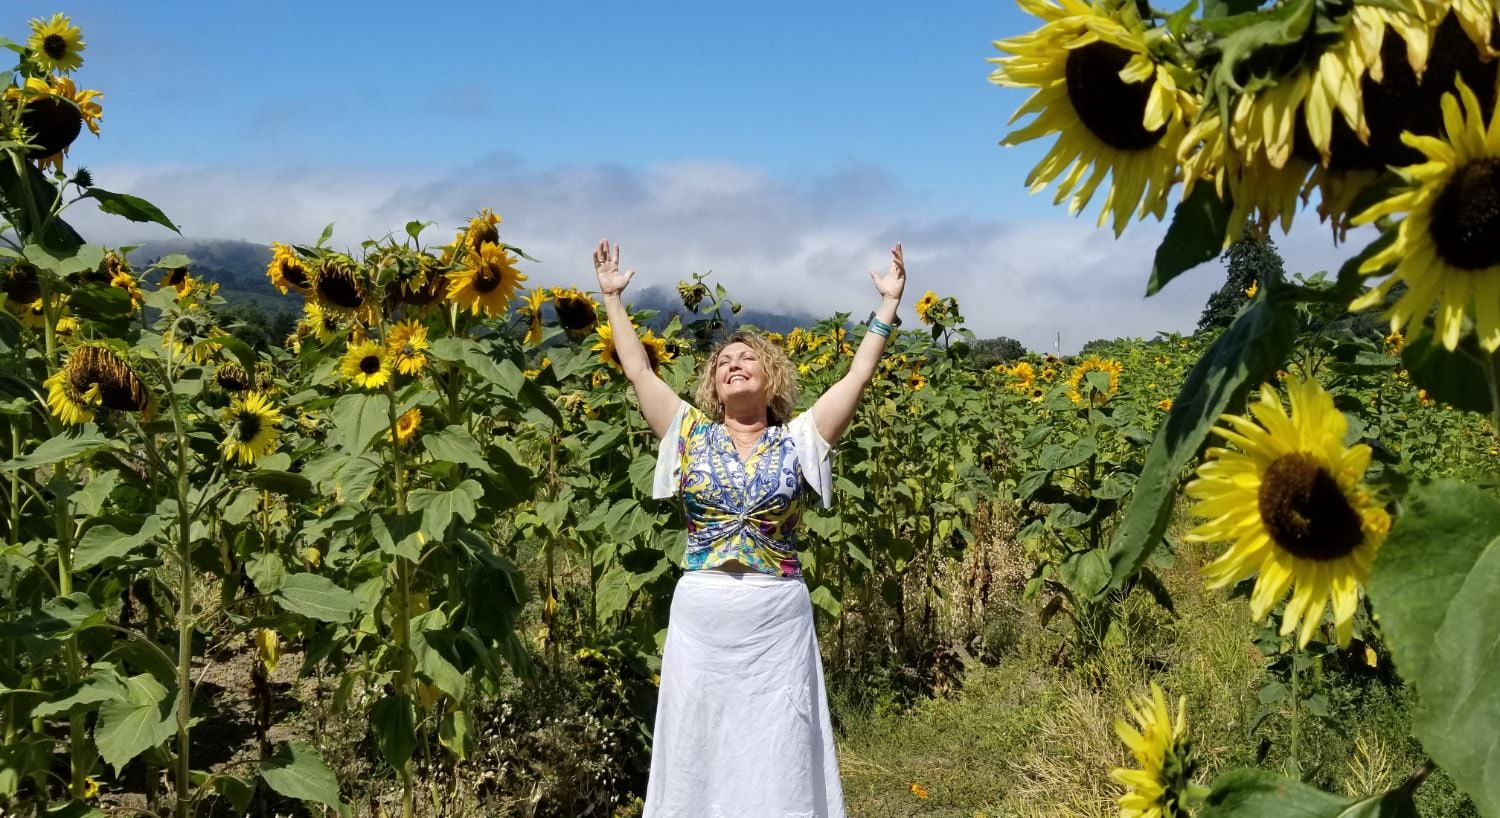 Woman with arms raised up and smiling in the sunshine in a field of large sunflowers